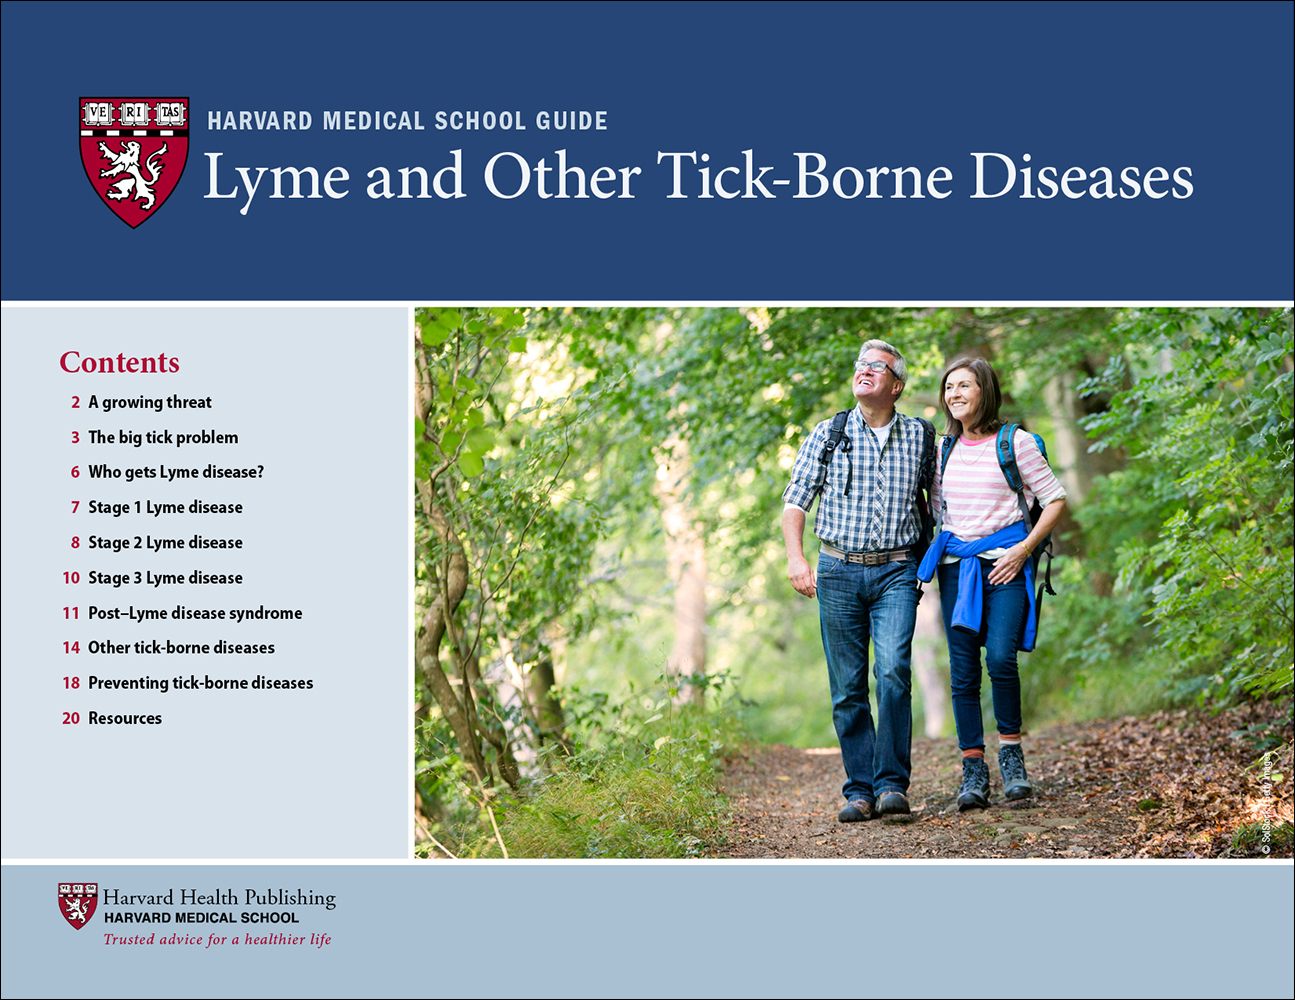 Lyme and Other Tick-Borne Diseases